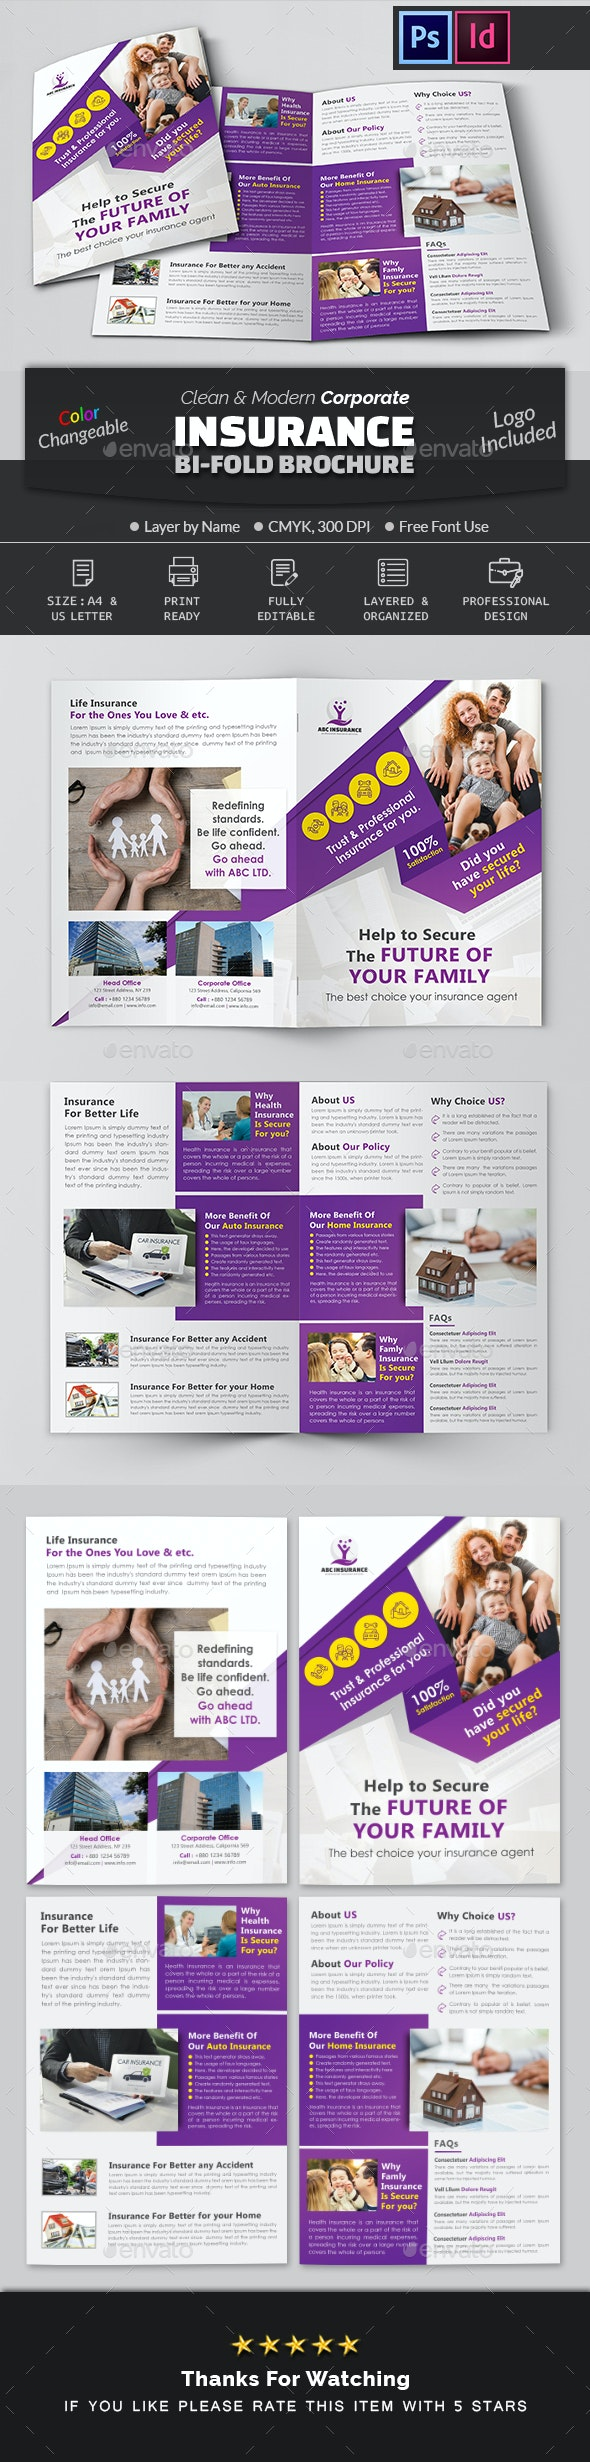 Insurance Company Bifold Brochure - Corporate Brochures